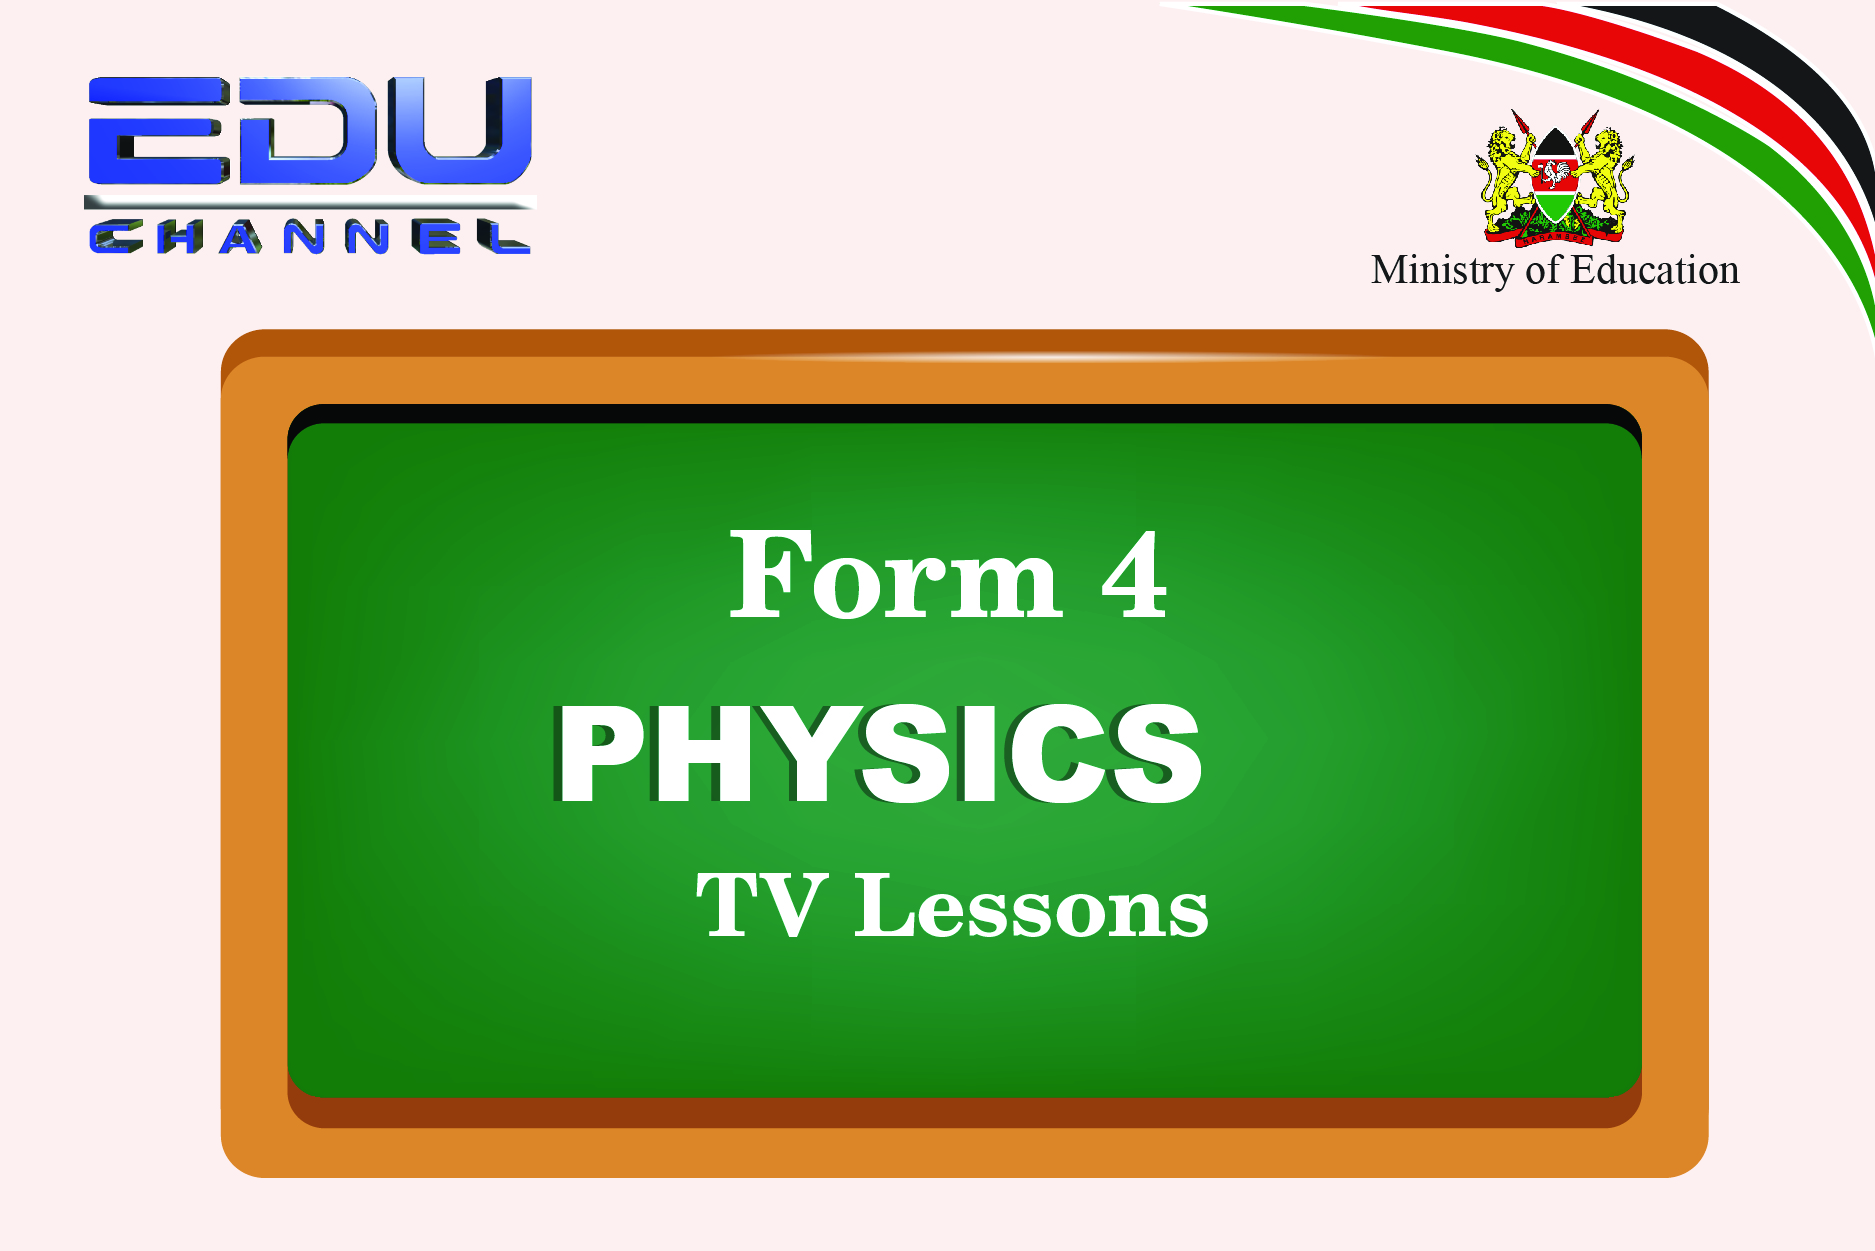 Form 4 physics Lesson 4: Electromagnetic Induction - Application of EM induction